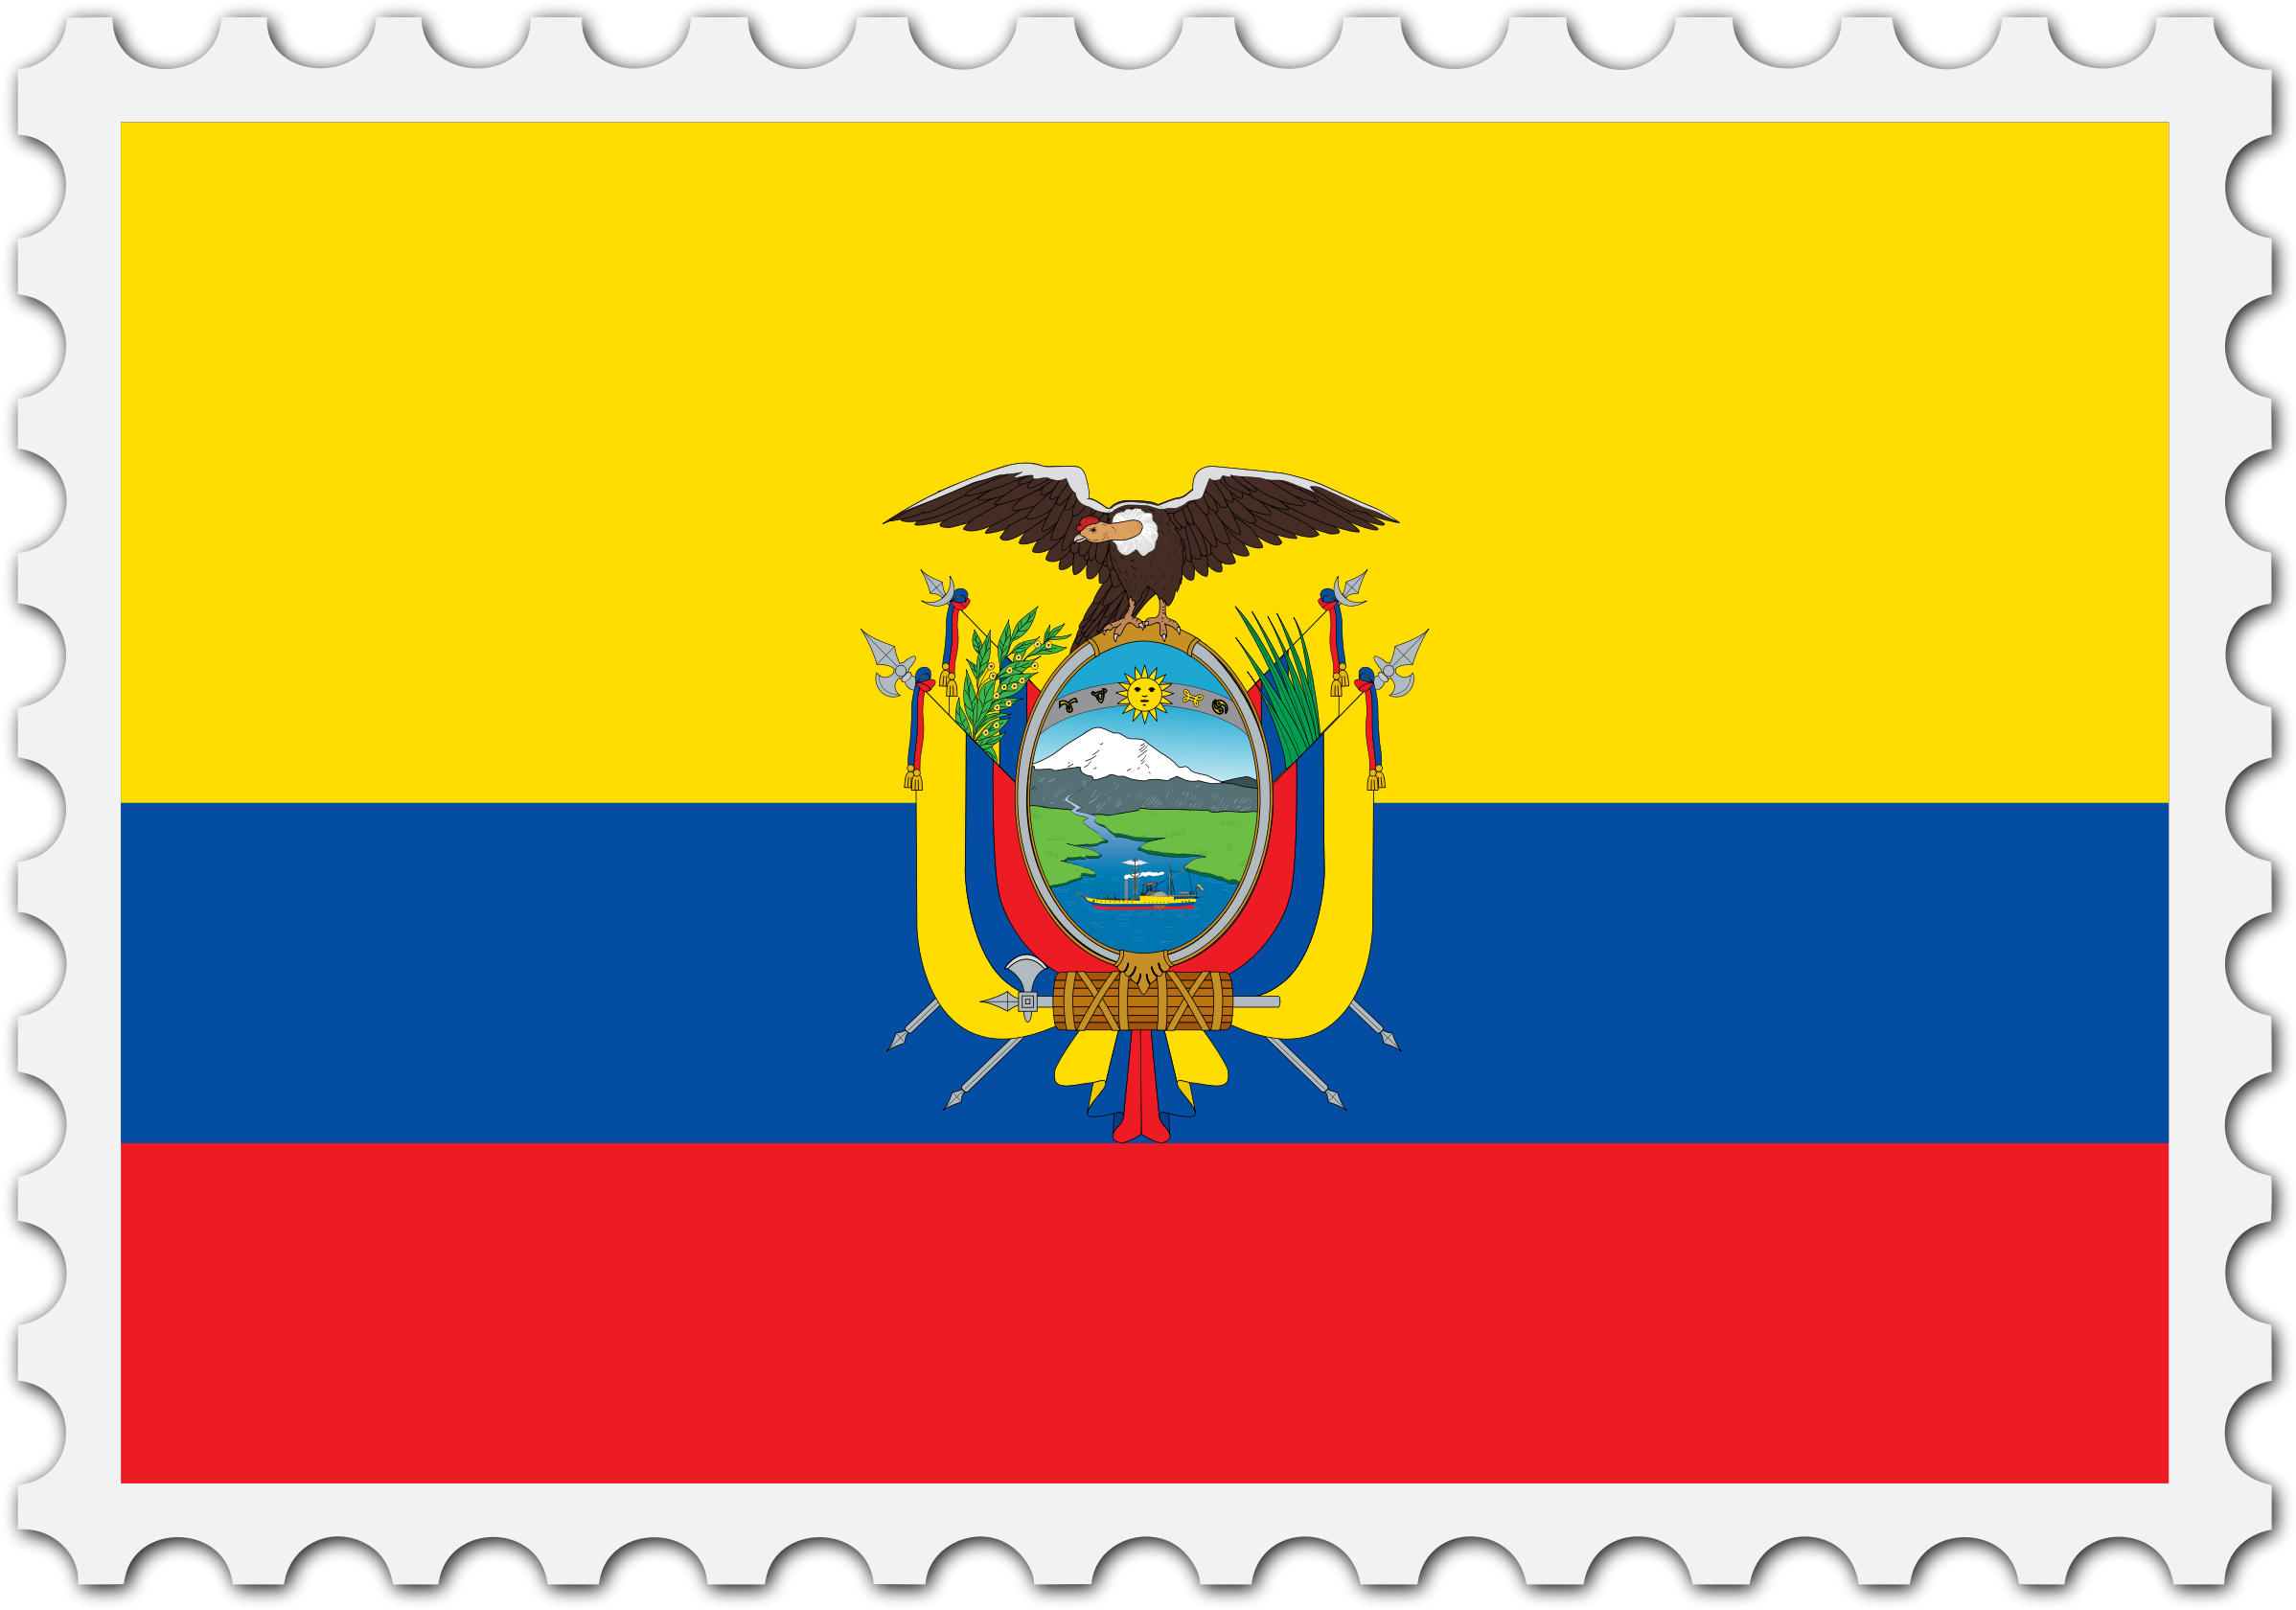 Ecuador flag stamp by Firkin